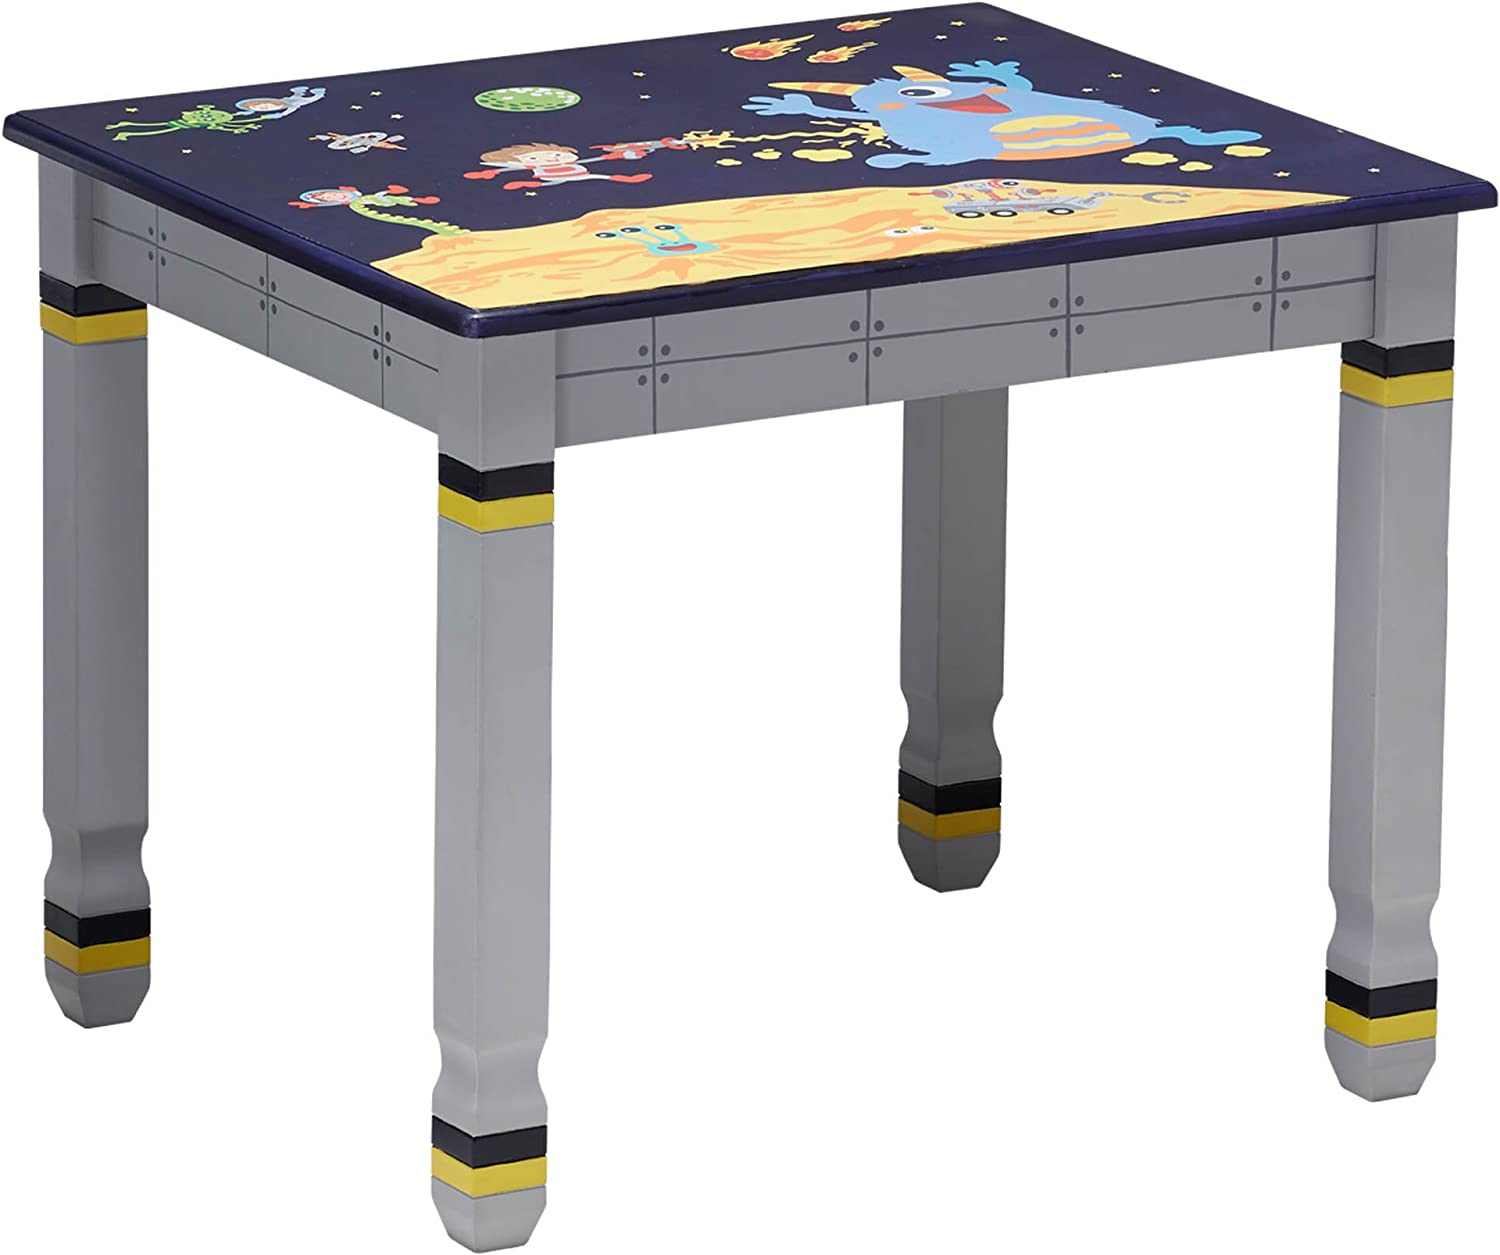 Fantasy Fields Kids Table, Blue - Outer Space